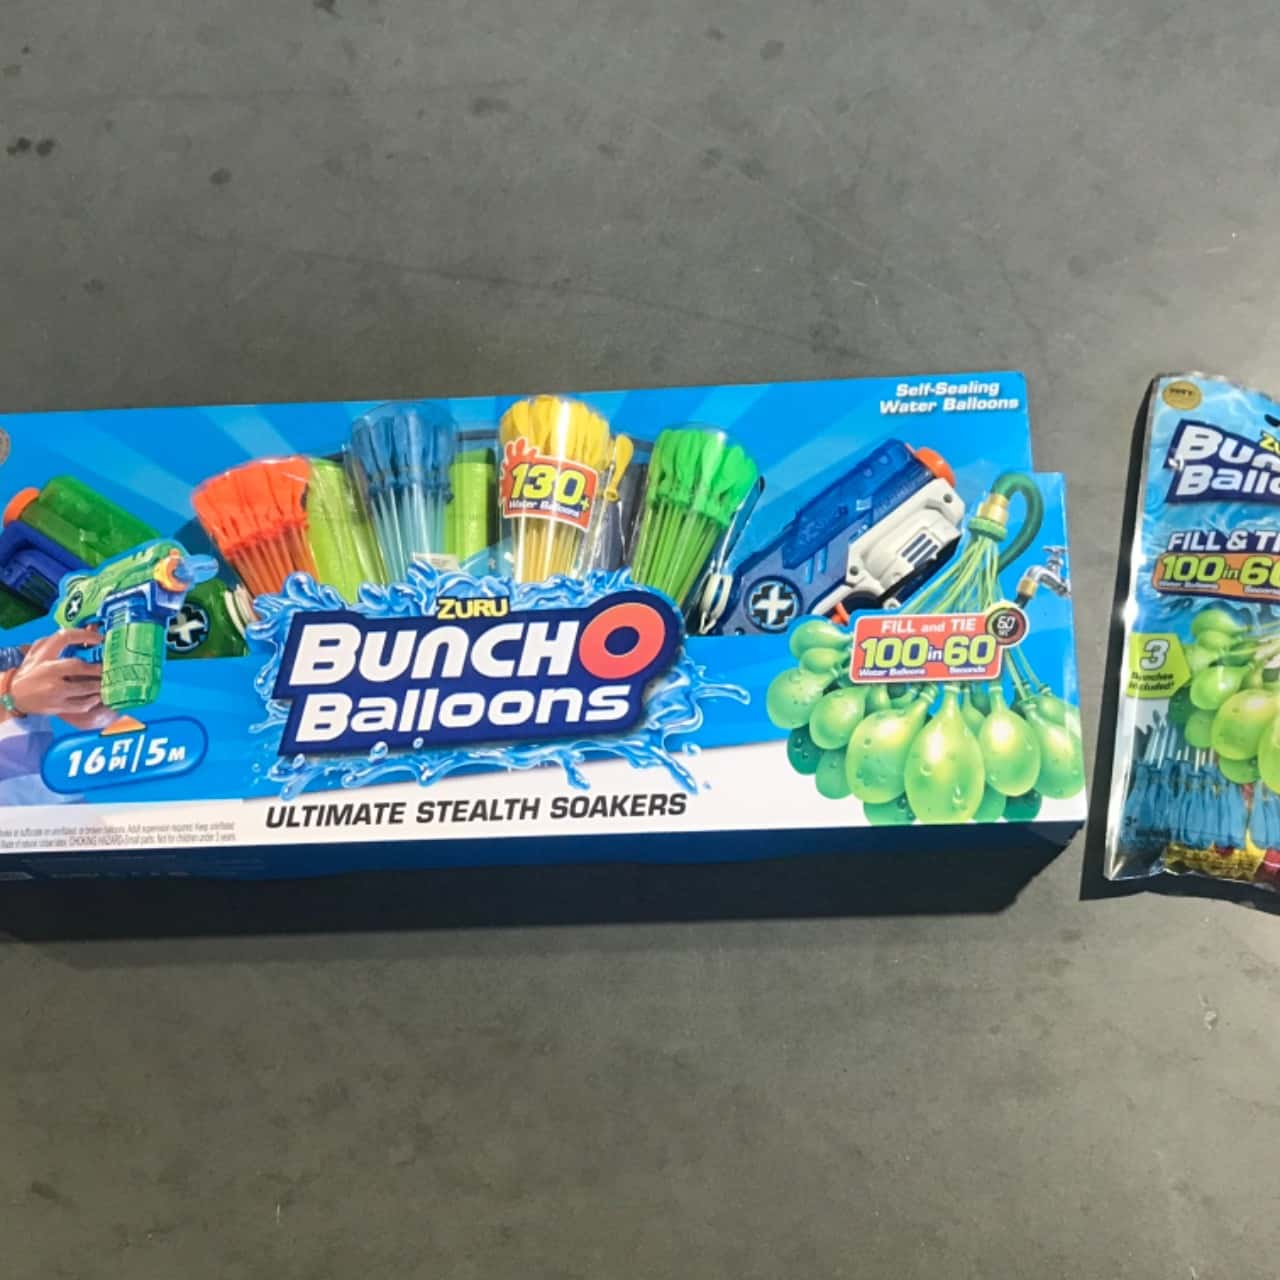 Zuru Bunch O Balloons Ultimate Stealth Soakers with Extra Balloons.